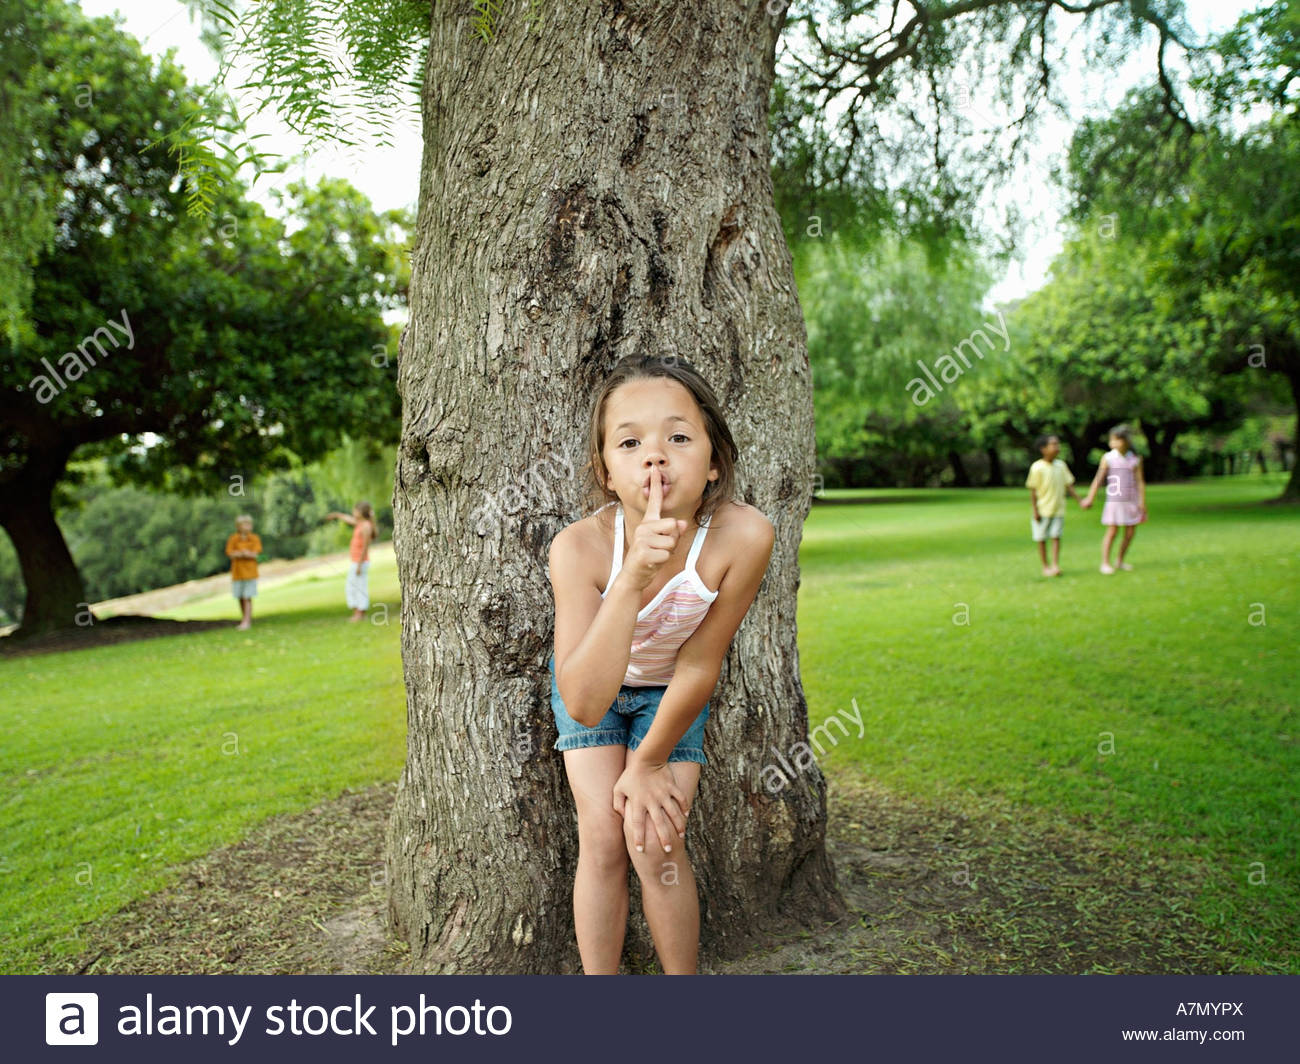 Girl 7 9 with finger on lips playing hide and seek in park hiding from friends behind tree - Stock Image